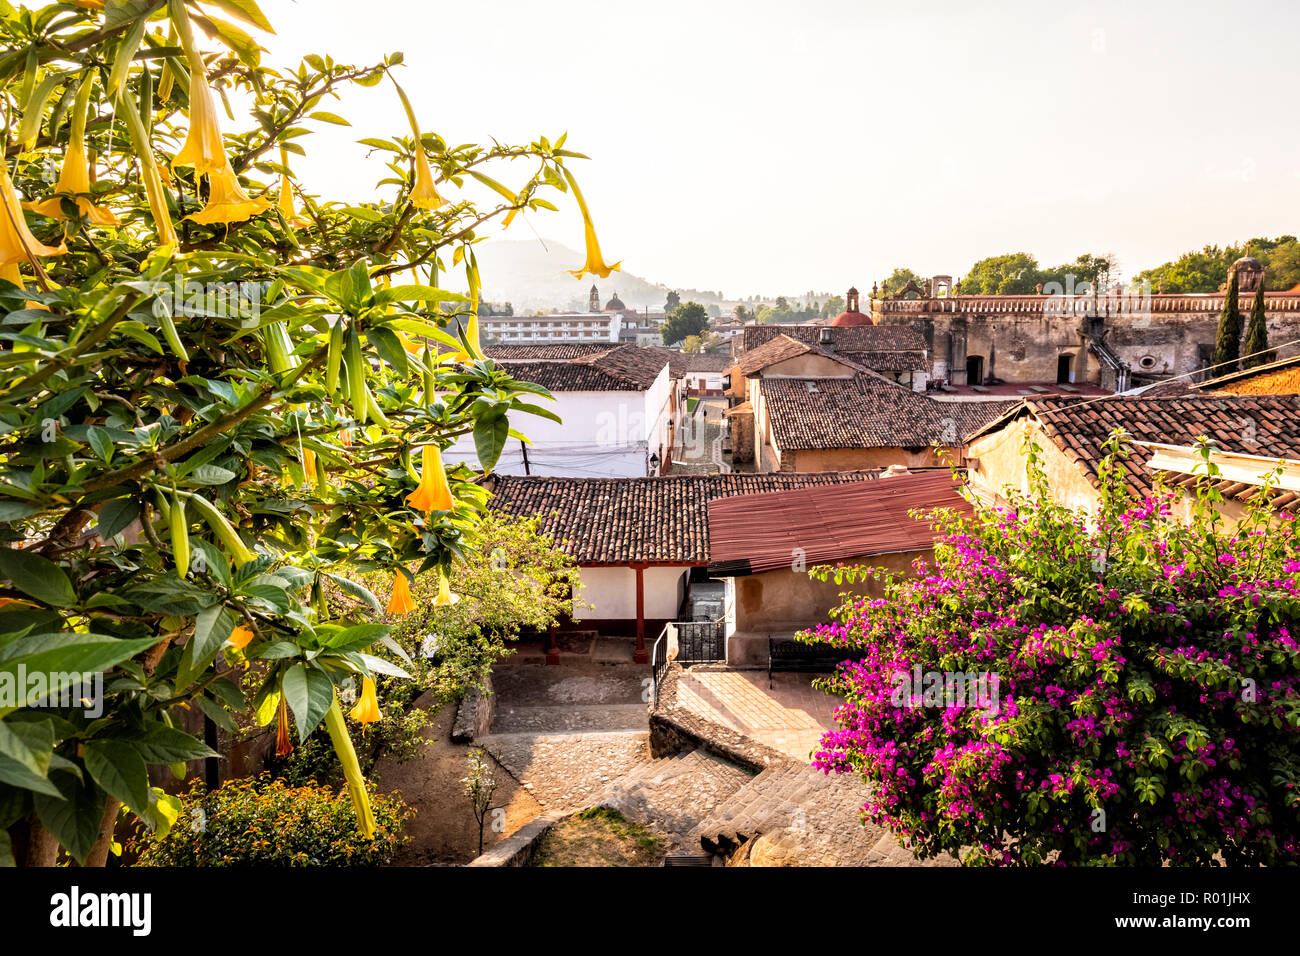 View from above of the tiled roofs near the Once Patios market in Patzcuaro, Michoacan, Mexico. - Stock Image